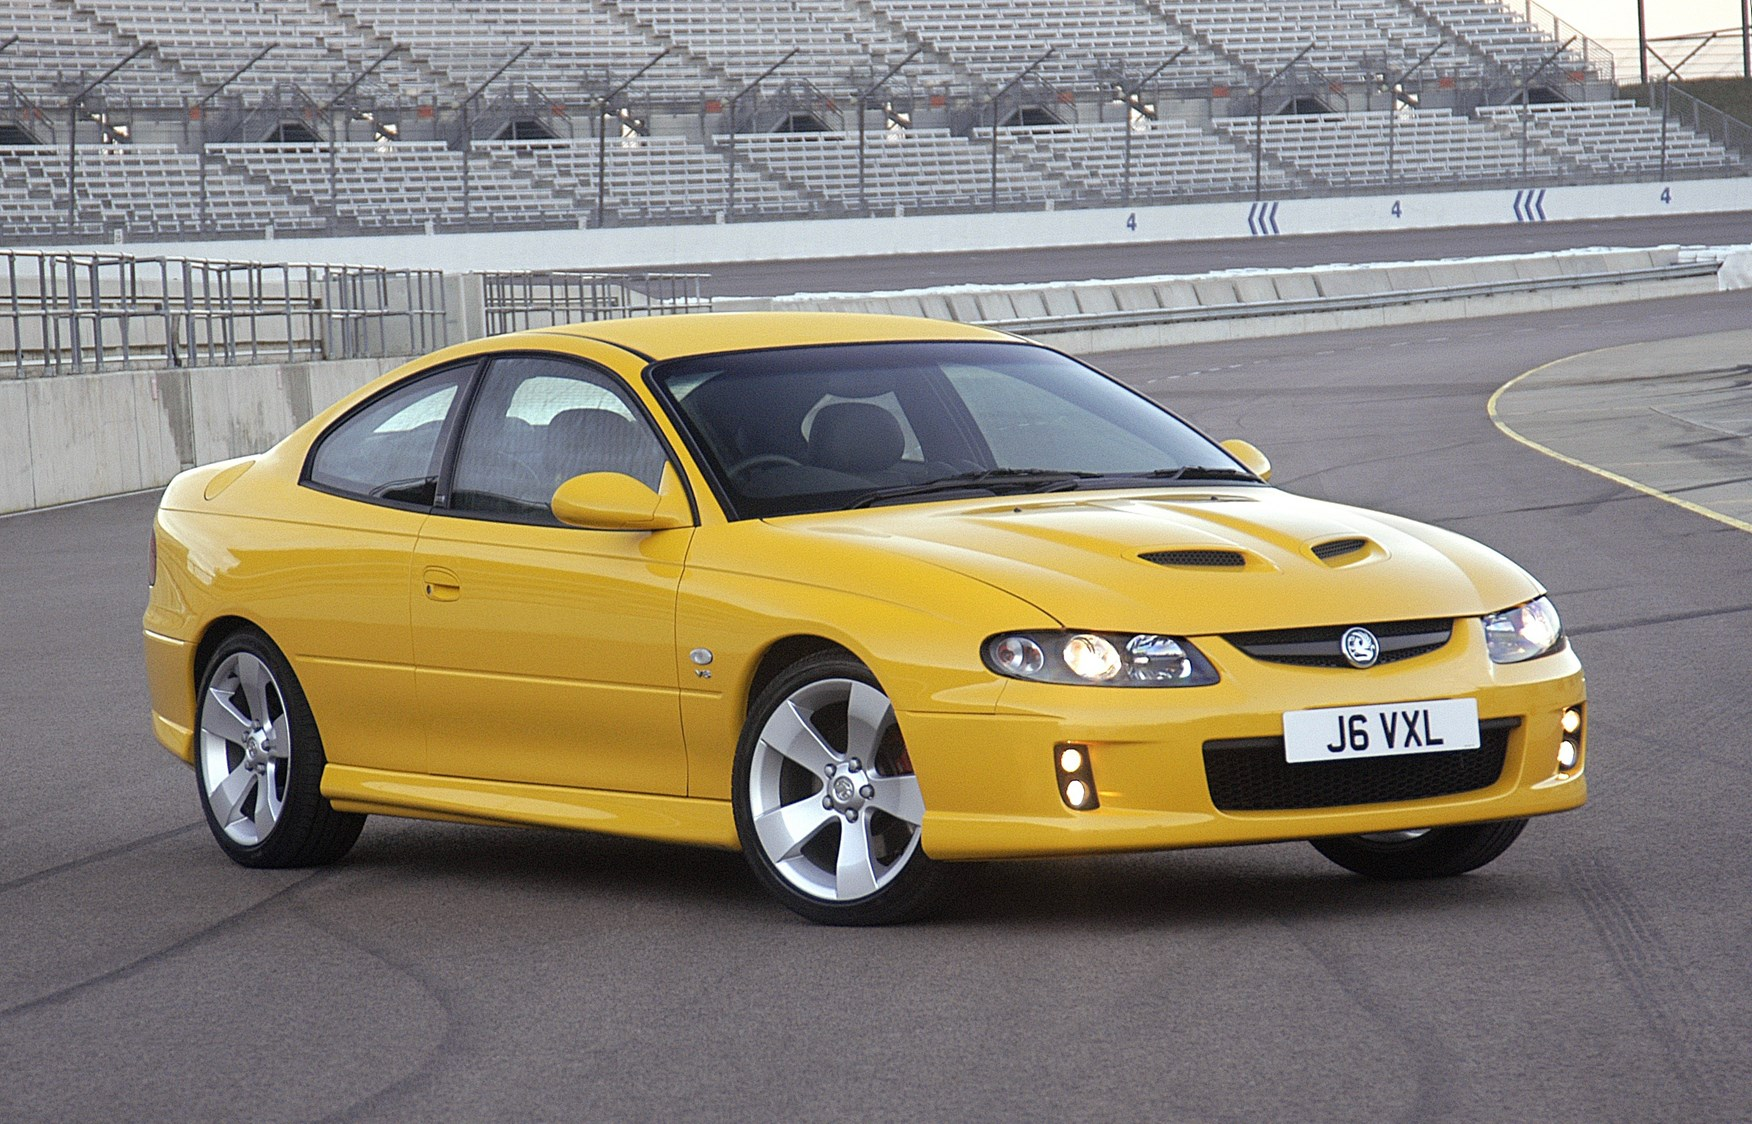 Vauxhall Monaro Coupe Review (2004 - 2006) | Parkers